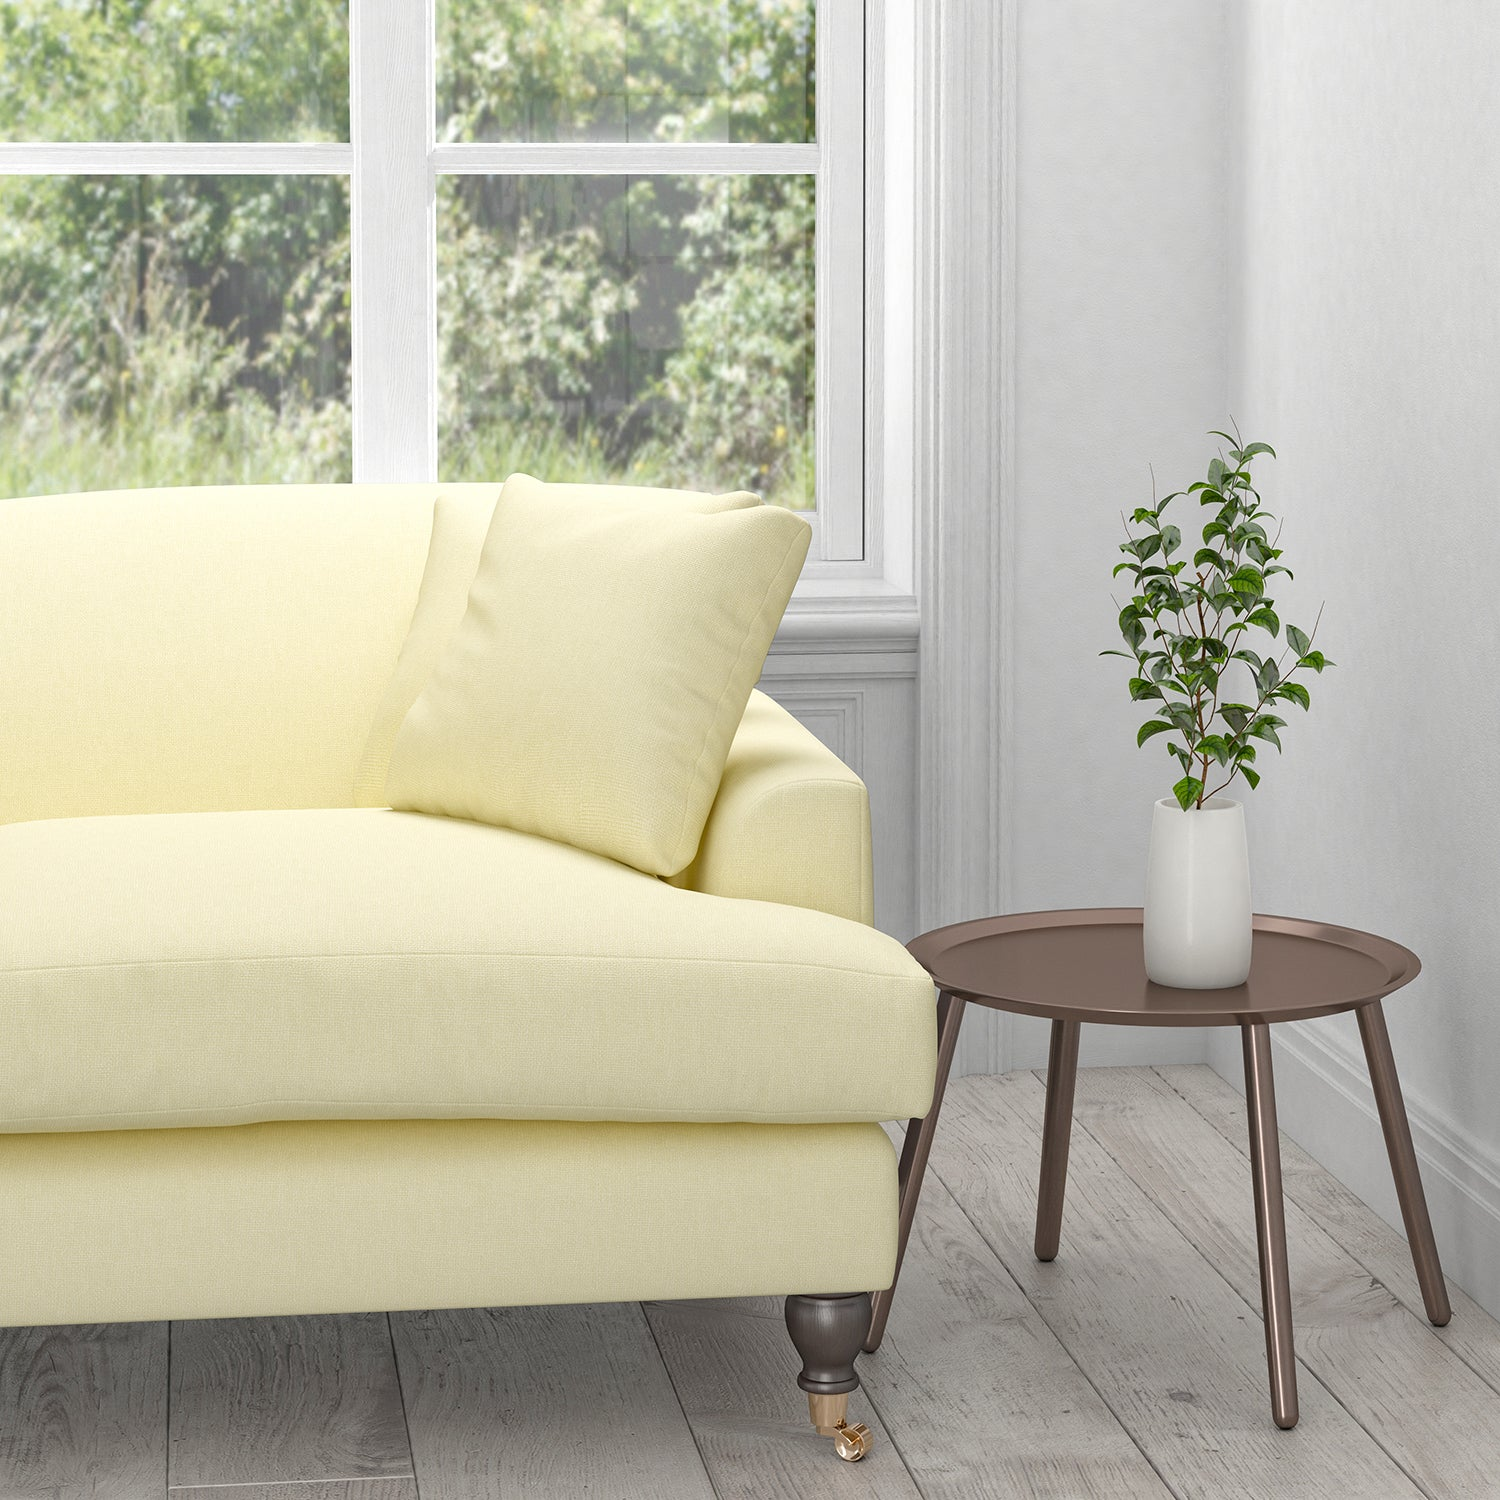 Sofa in an off-white plain cotton washable upholstery fabric